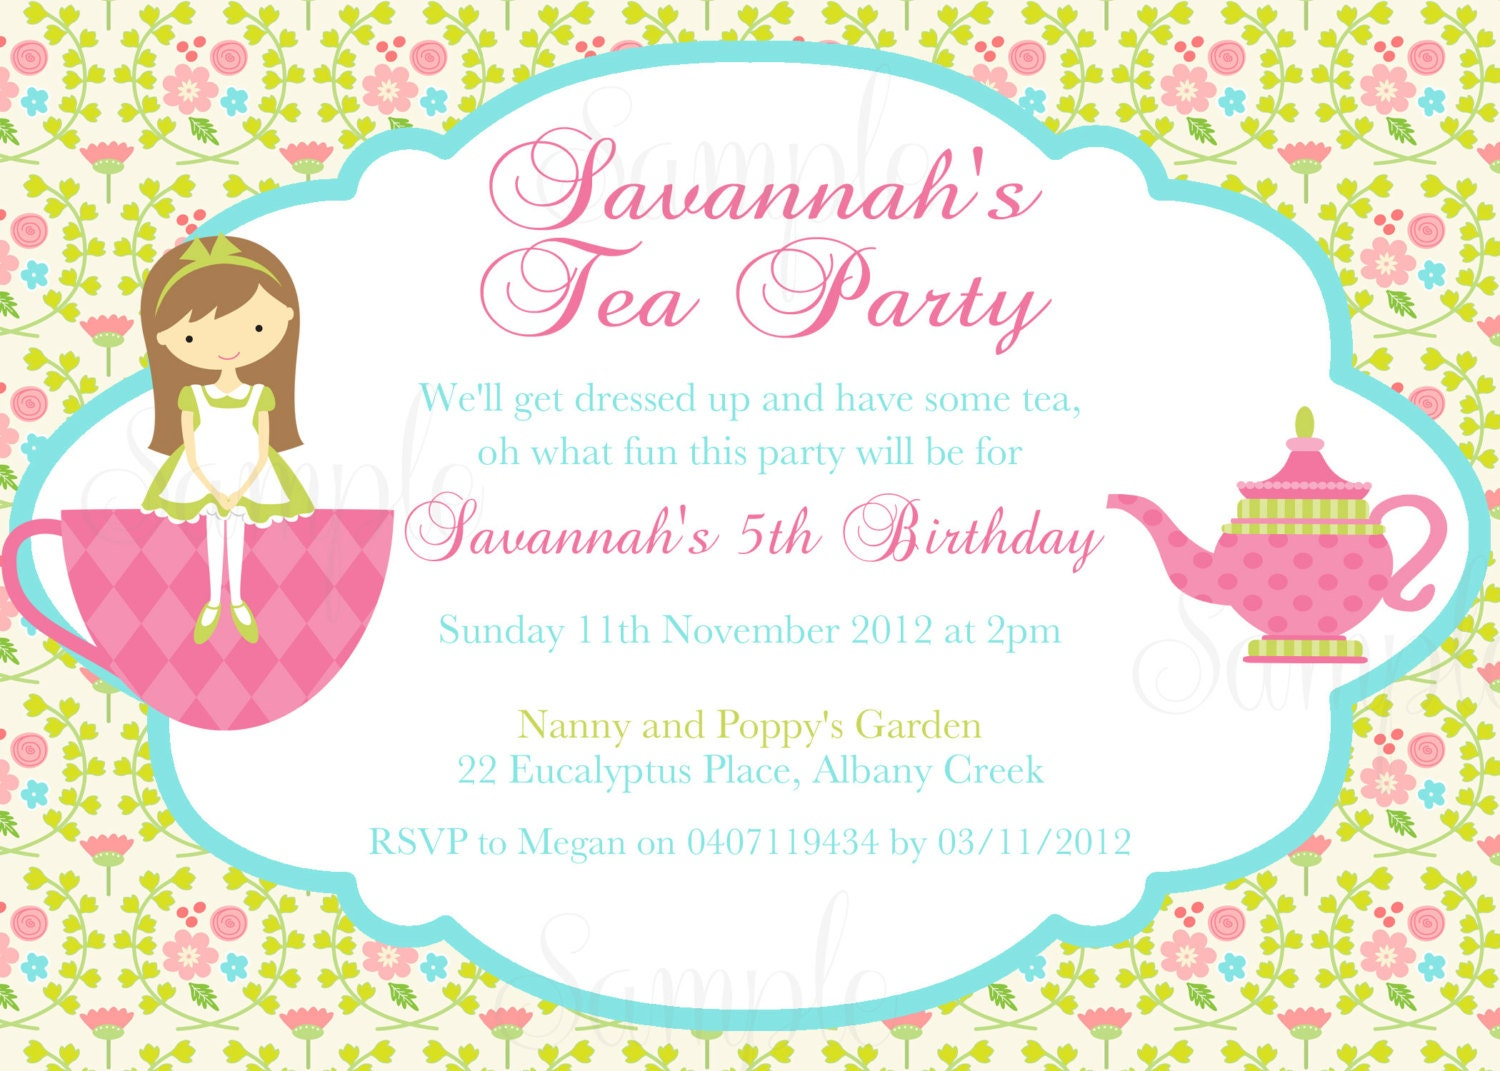 Afternoon Tea Party Invitations Uk as good invitation design